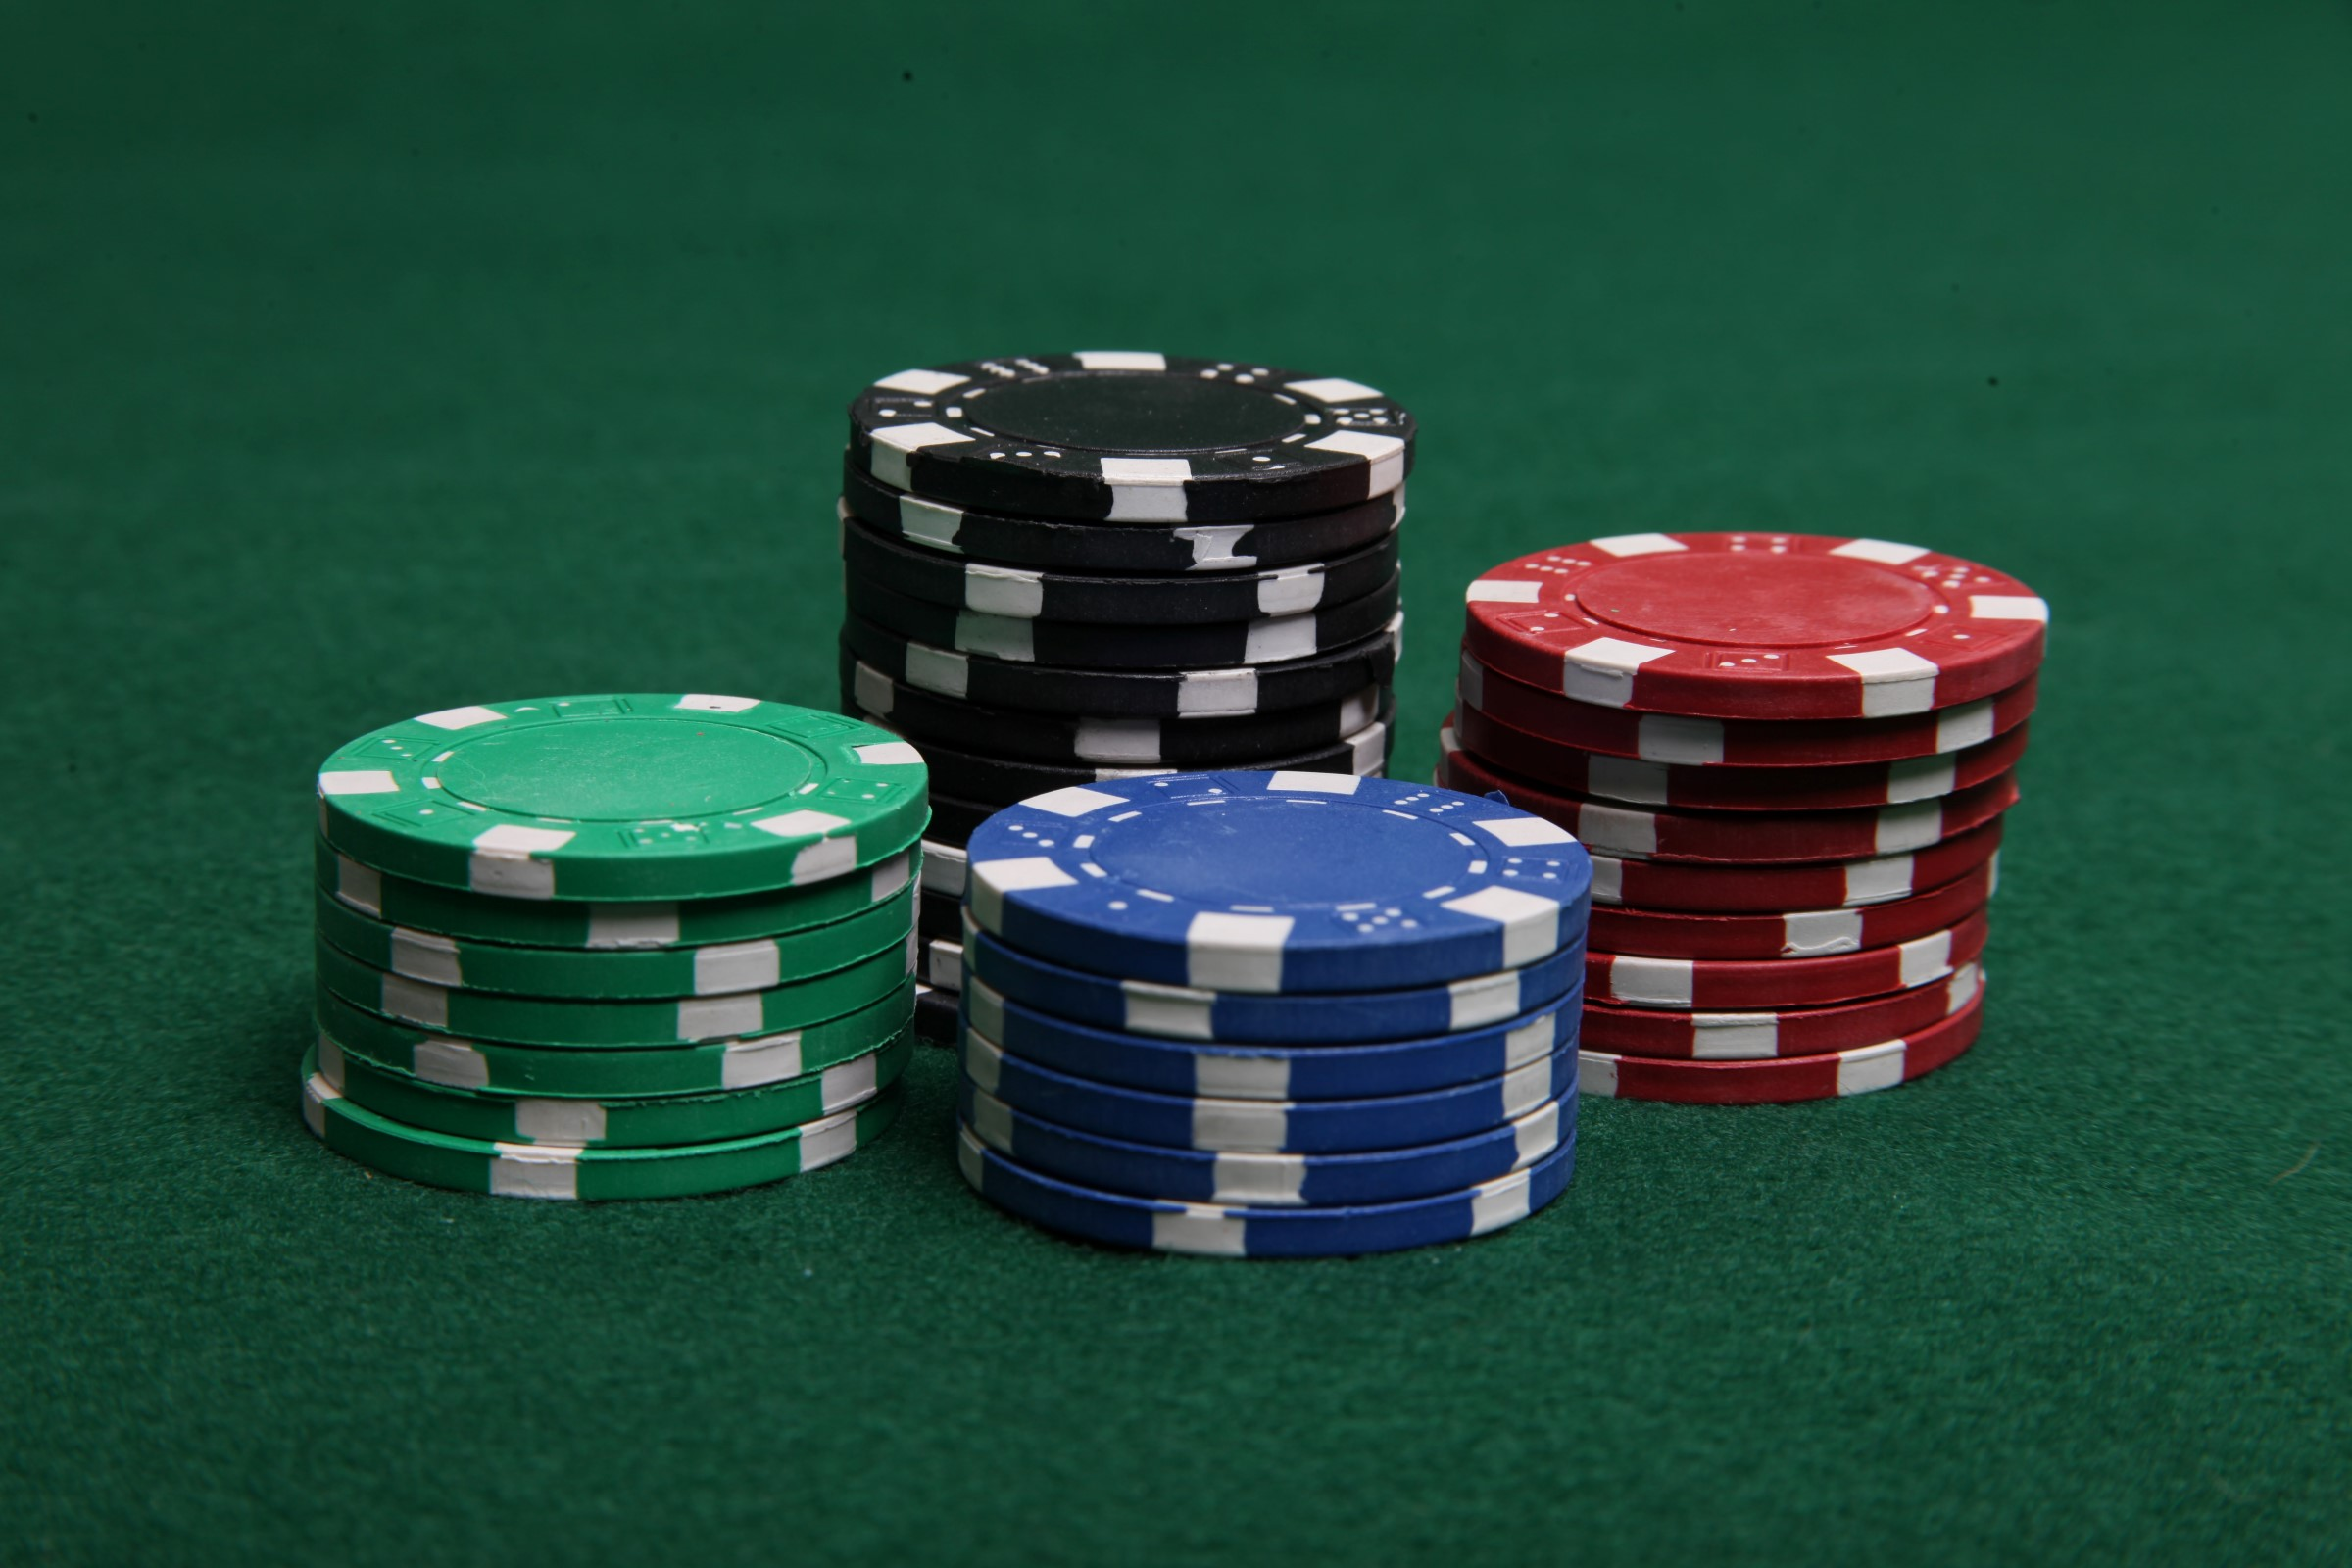 Stacks of poker chips photo